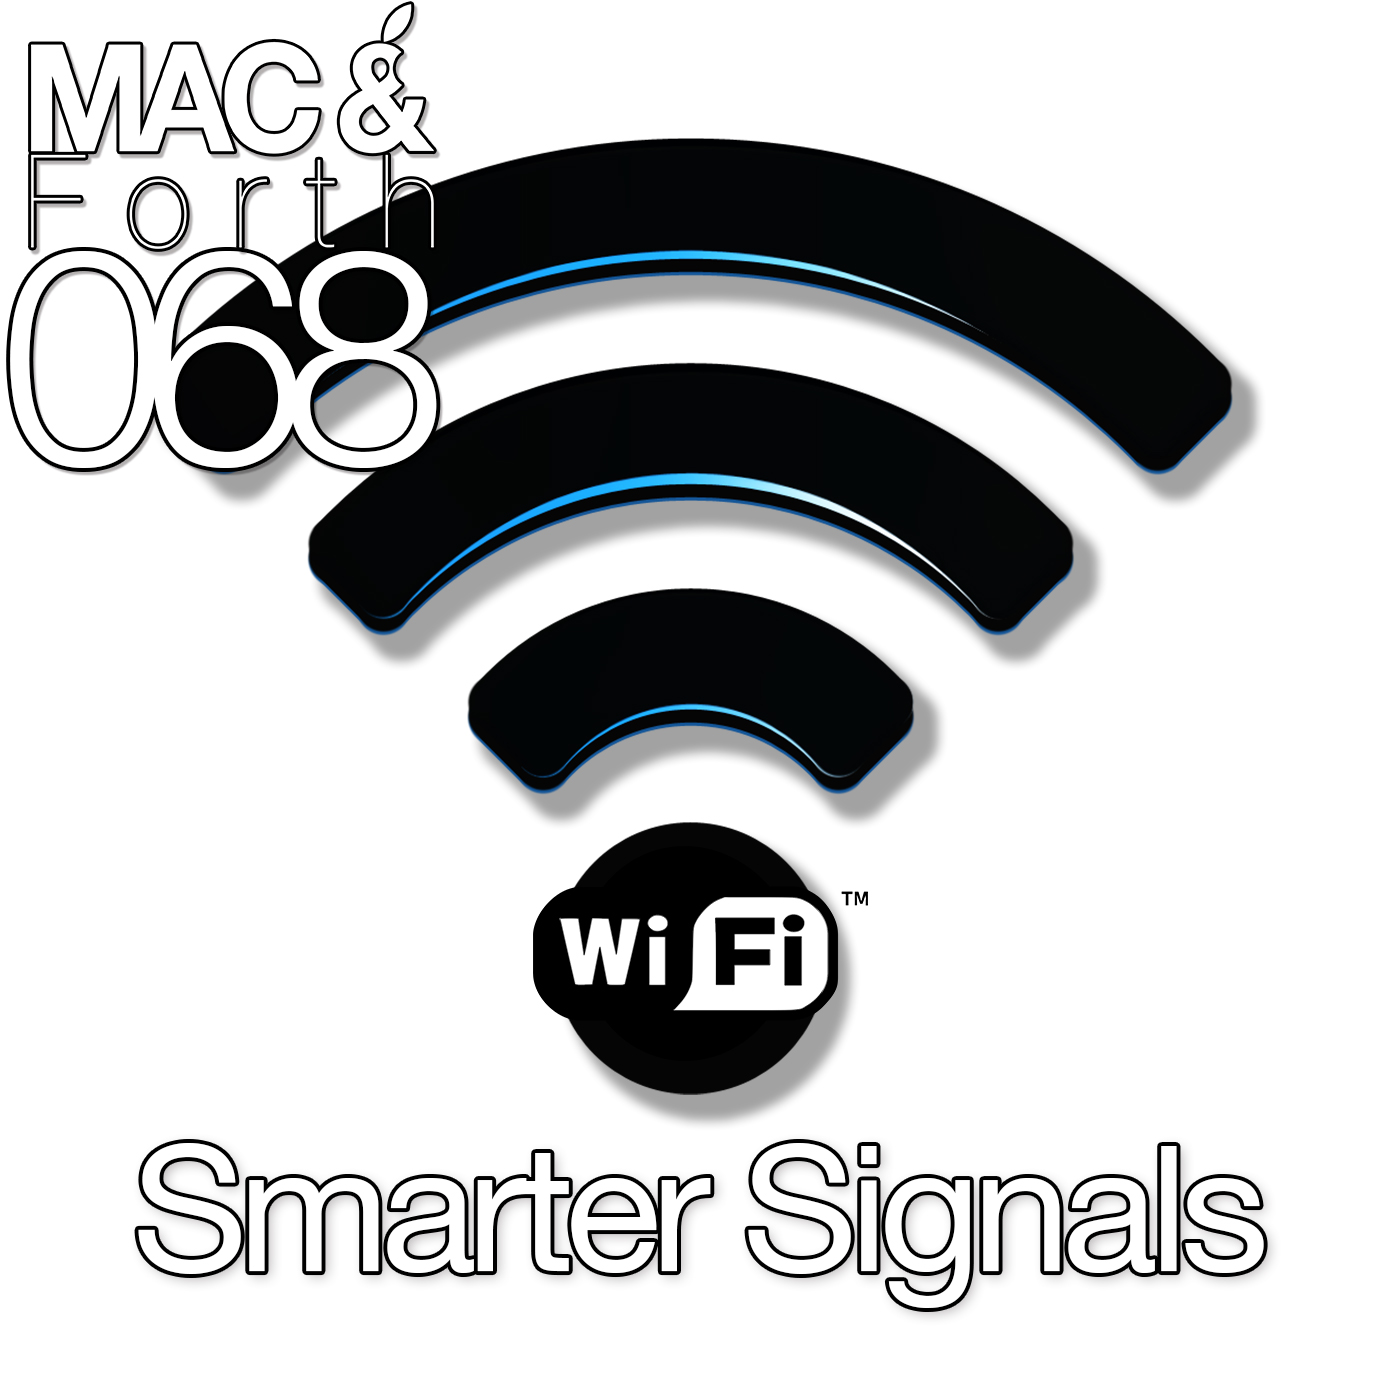 The Mac & Forth Show 068 - Smarter Signals